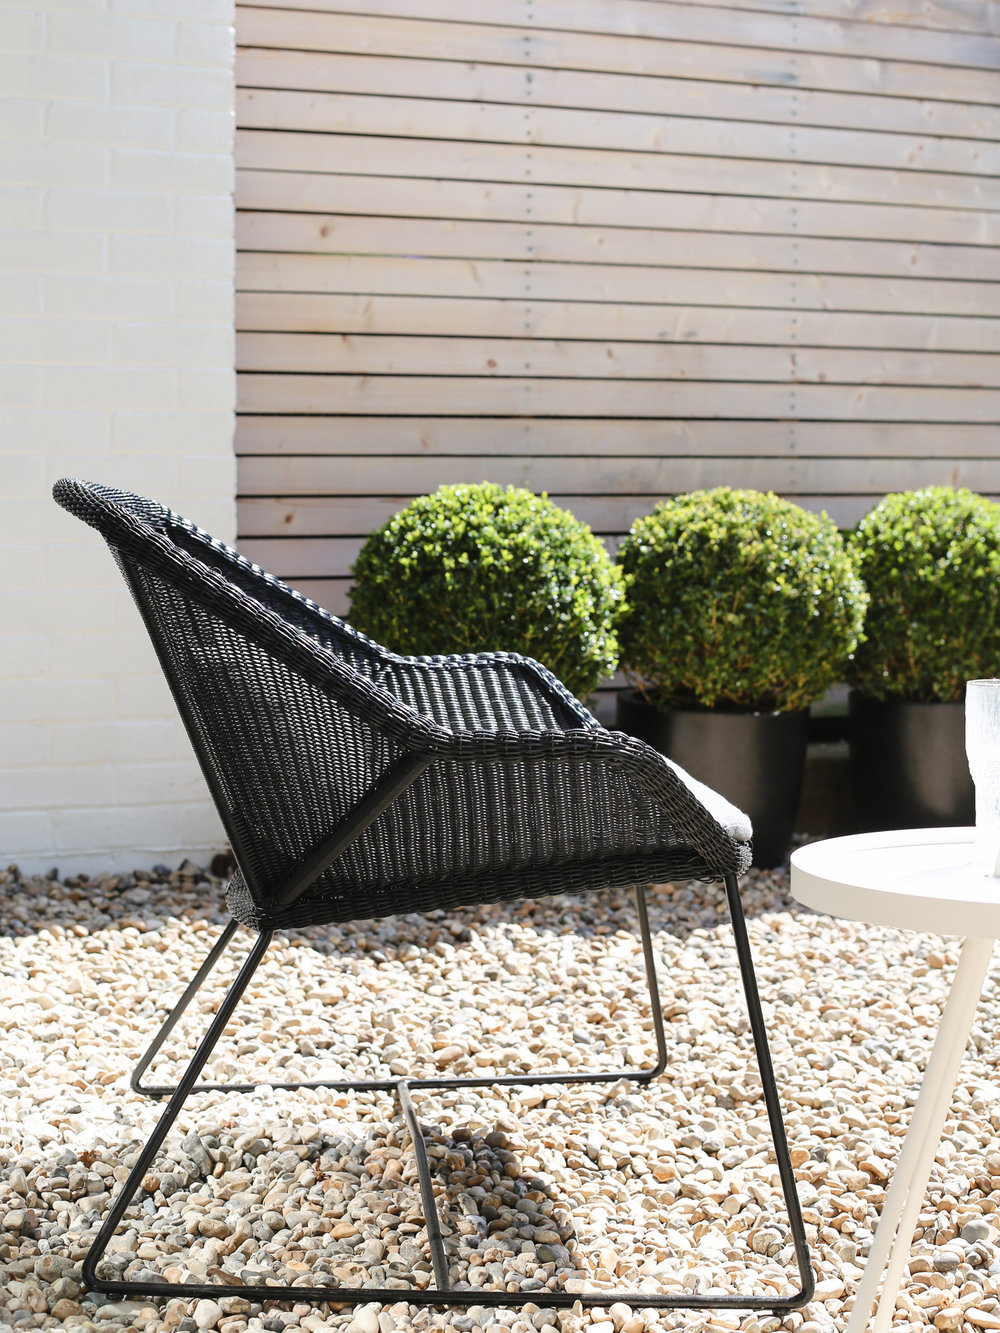 Black rattan chair by Cane-line | Design Hunter